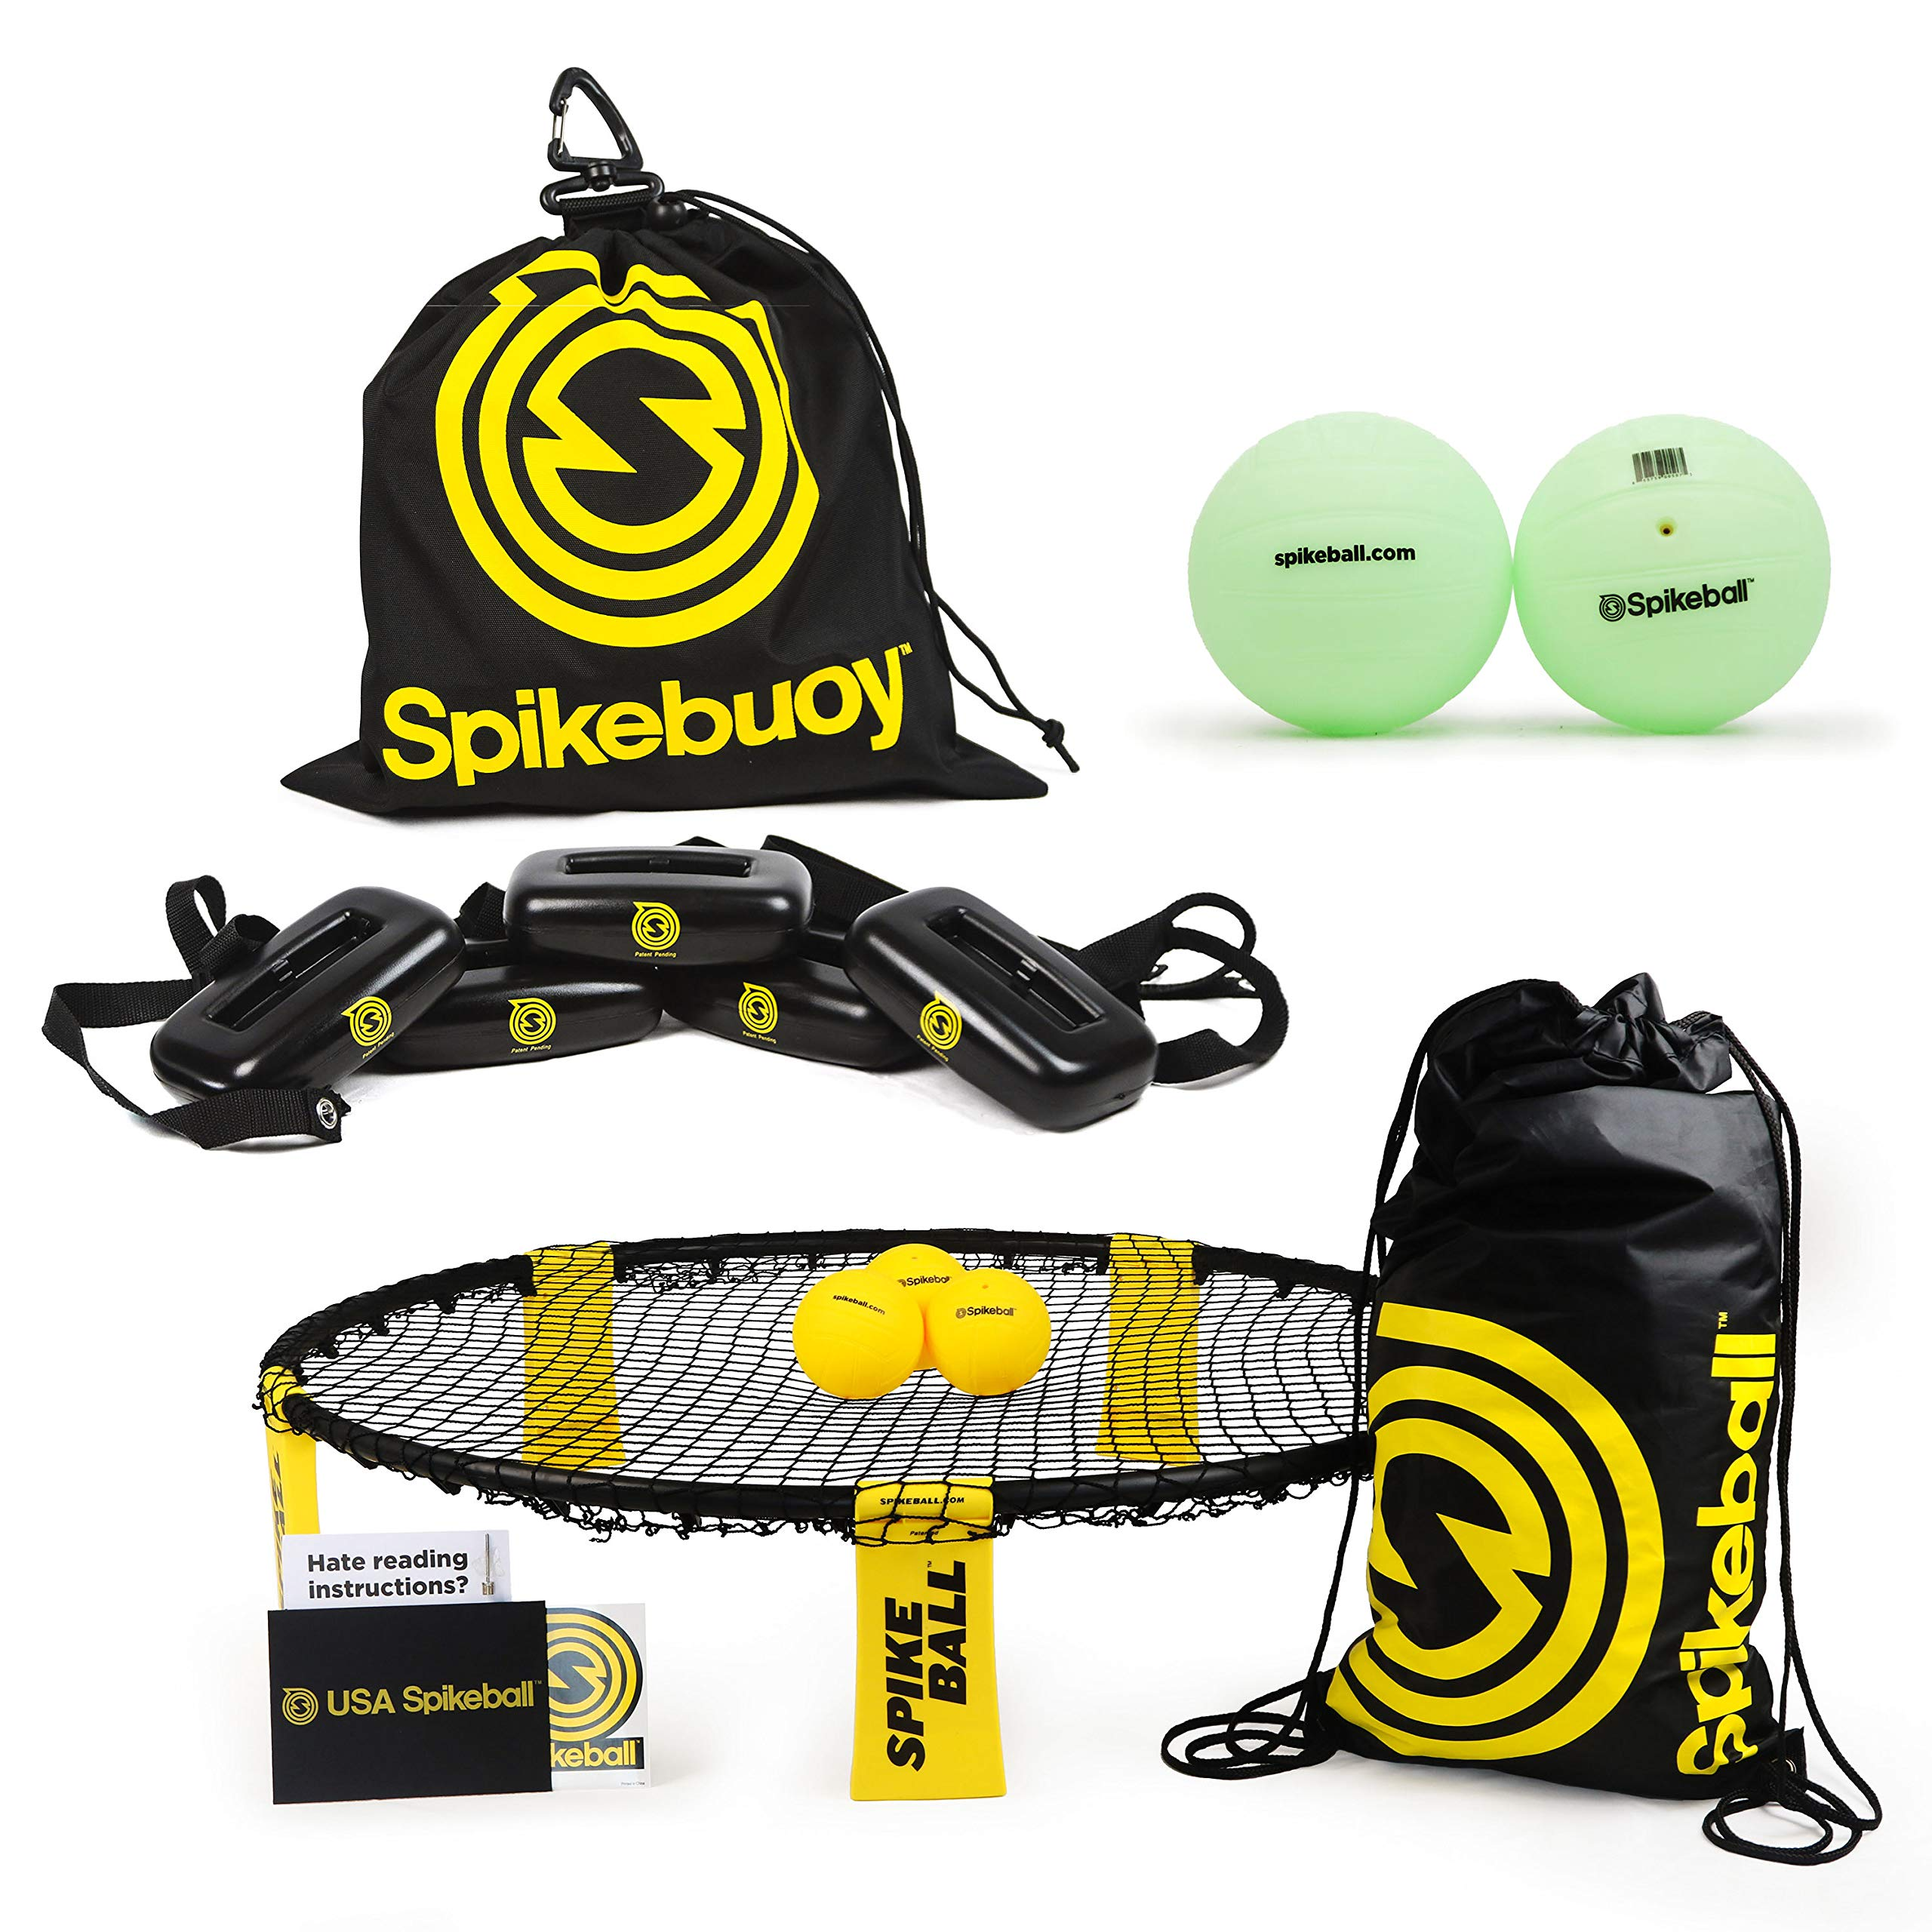 Spikeball 3 Ball Kit Bundle with Spikebuoy + Glow in The Dark Balls